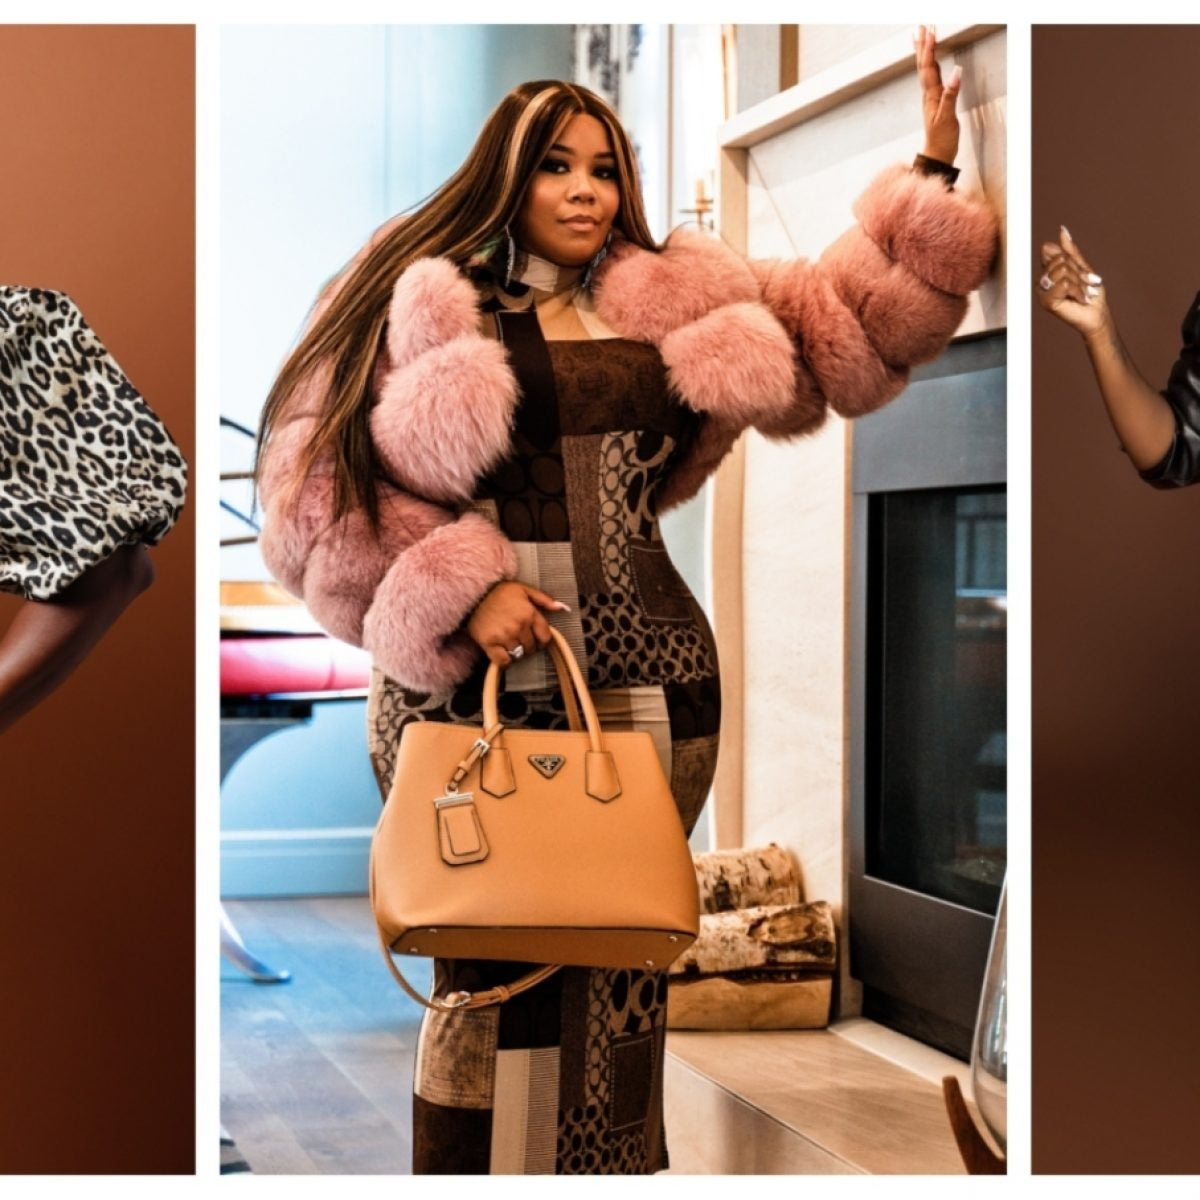 5 Black Publicists Who Started Their Own Fashion and Beauty Empires